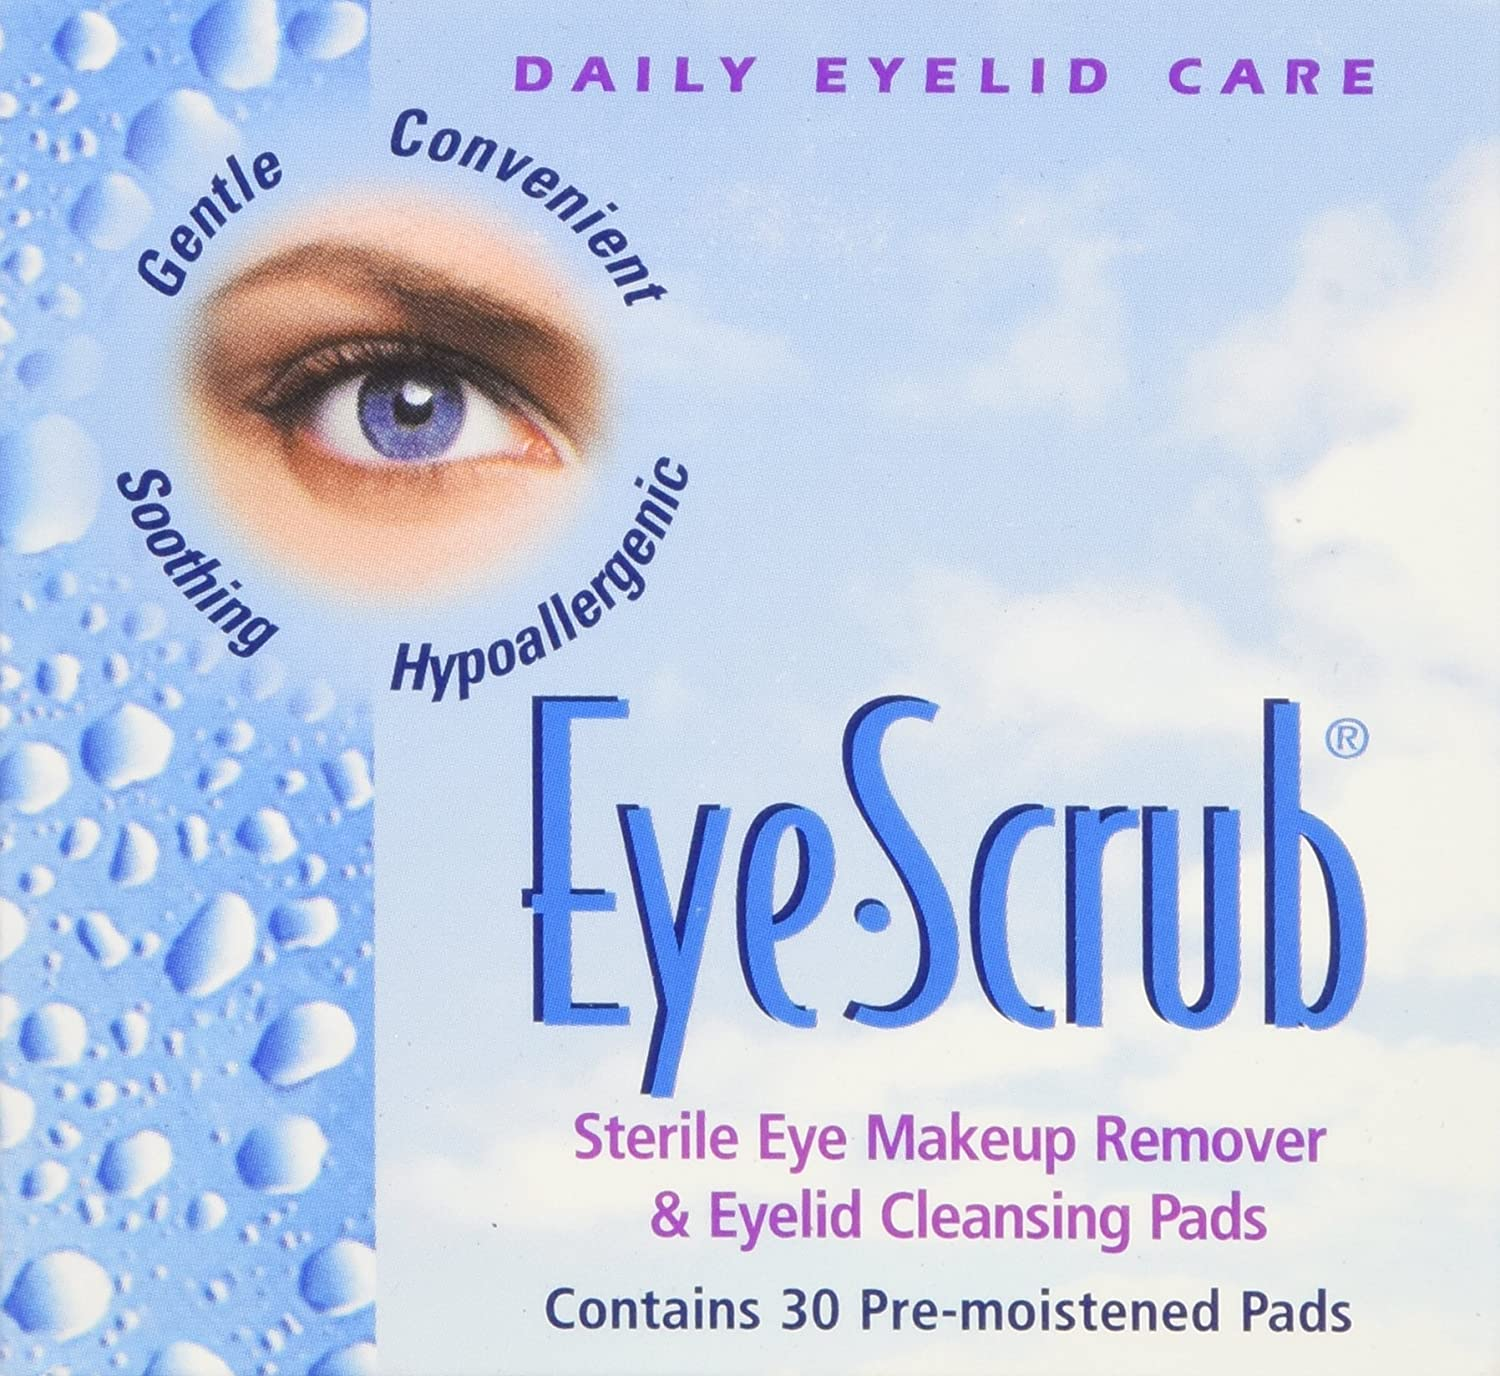 Eye Scrub Sterile Makeup Remover and Eyelid Cleansing Pads, 30 Count (Pack of 3) Everready First Aid NOV010330-X3